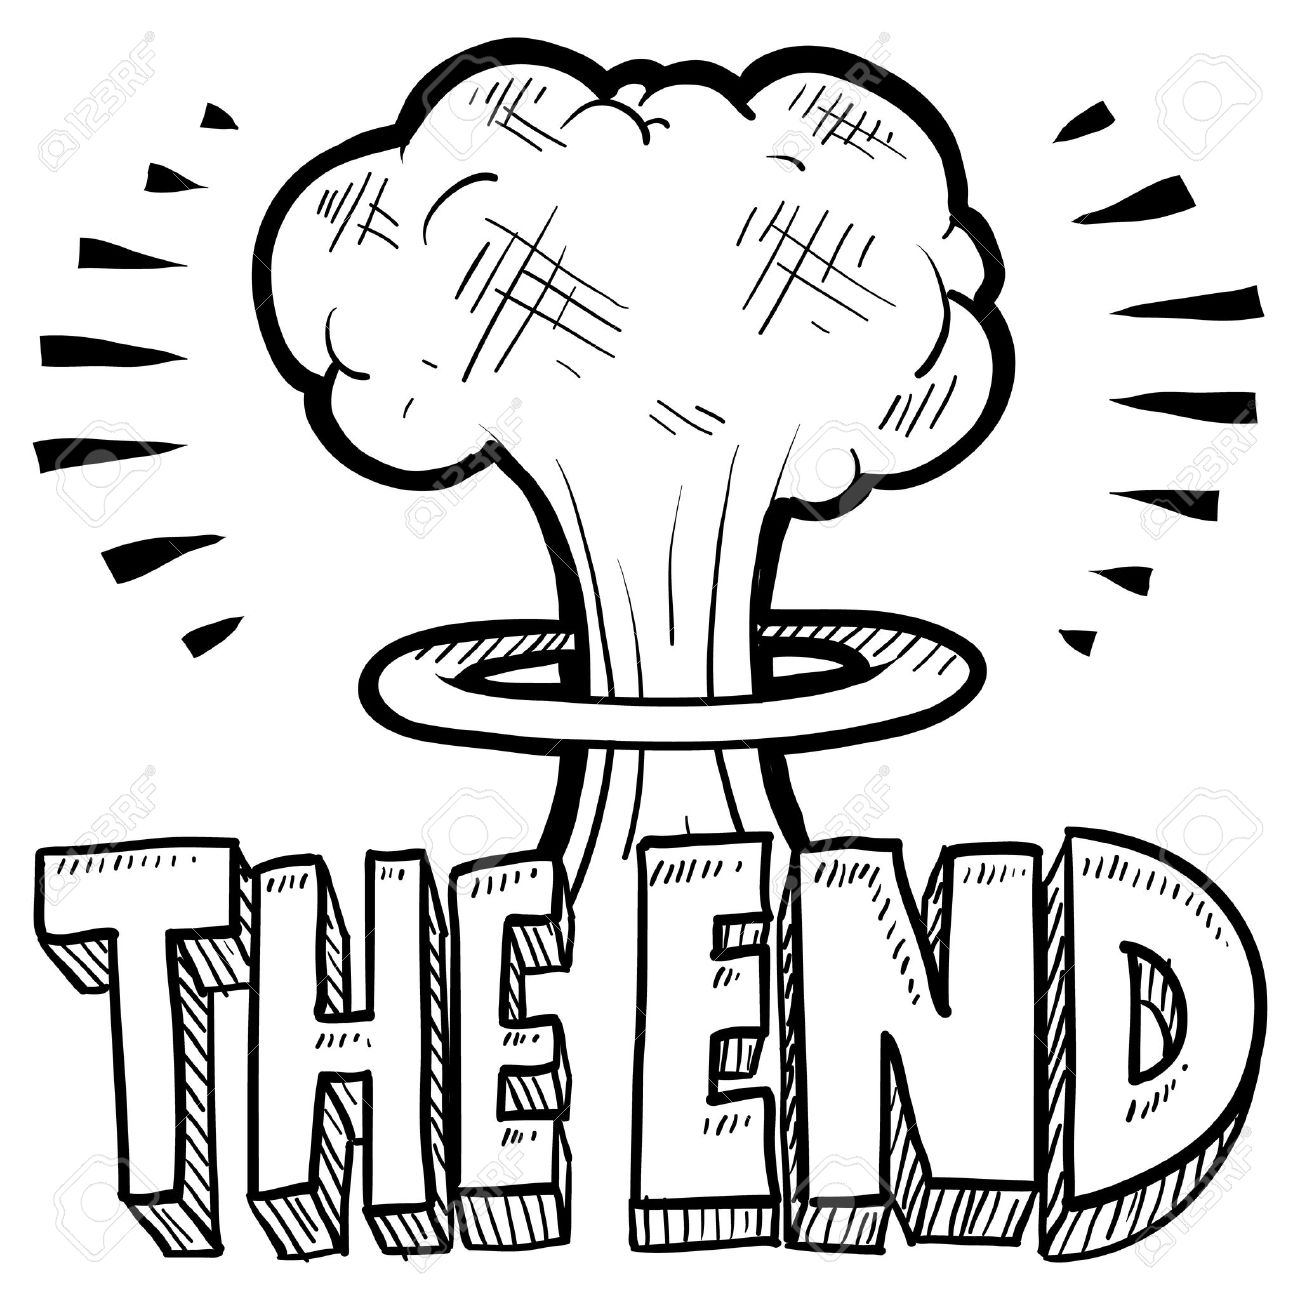 1300x1300 Doodle Style The End Sketch With Cartoon Mushroom Cloud And Text